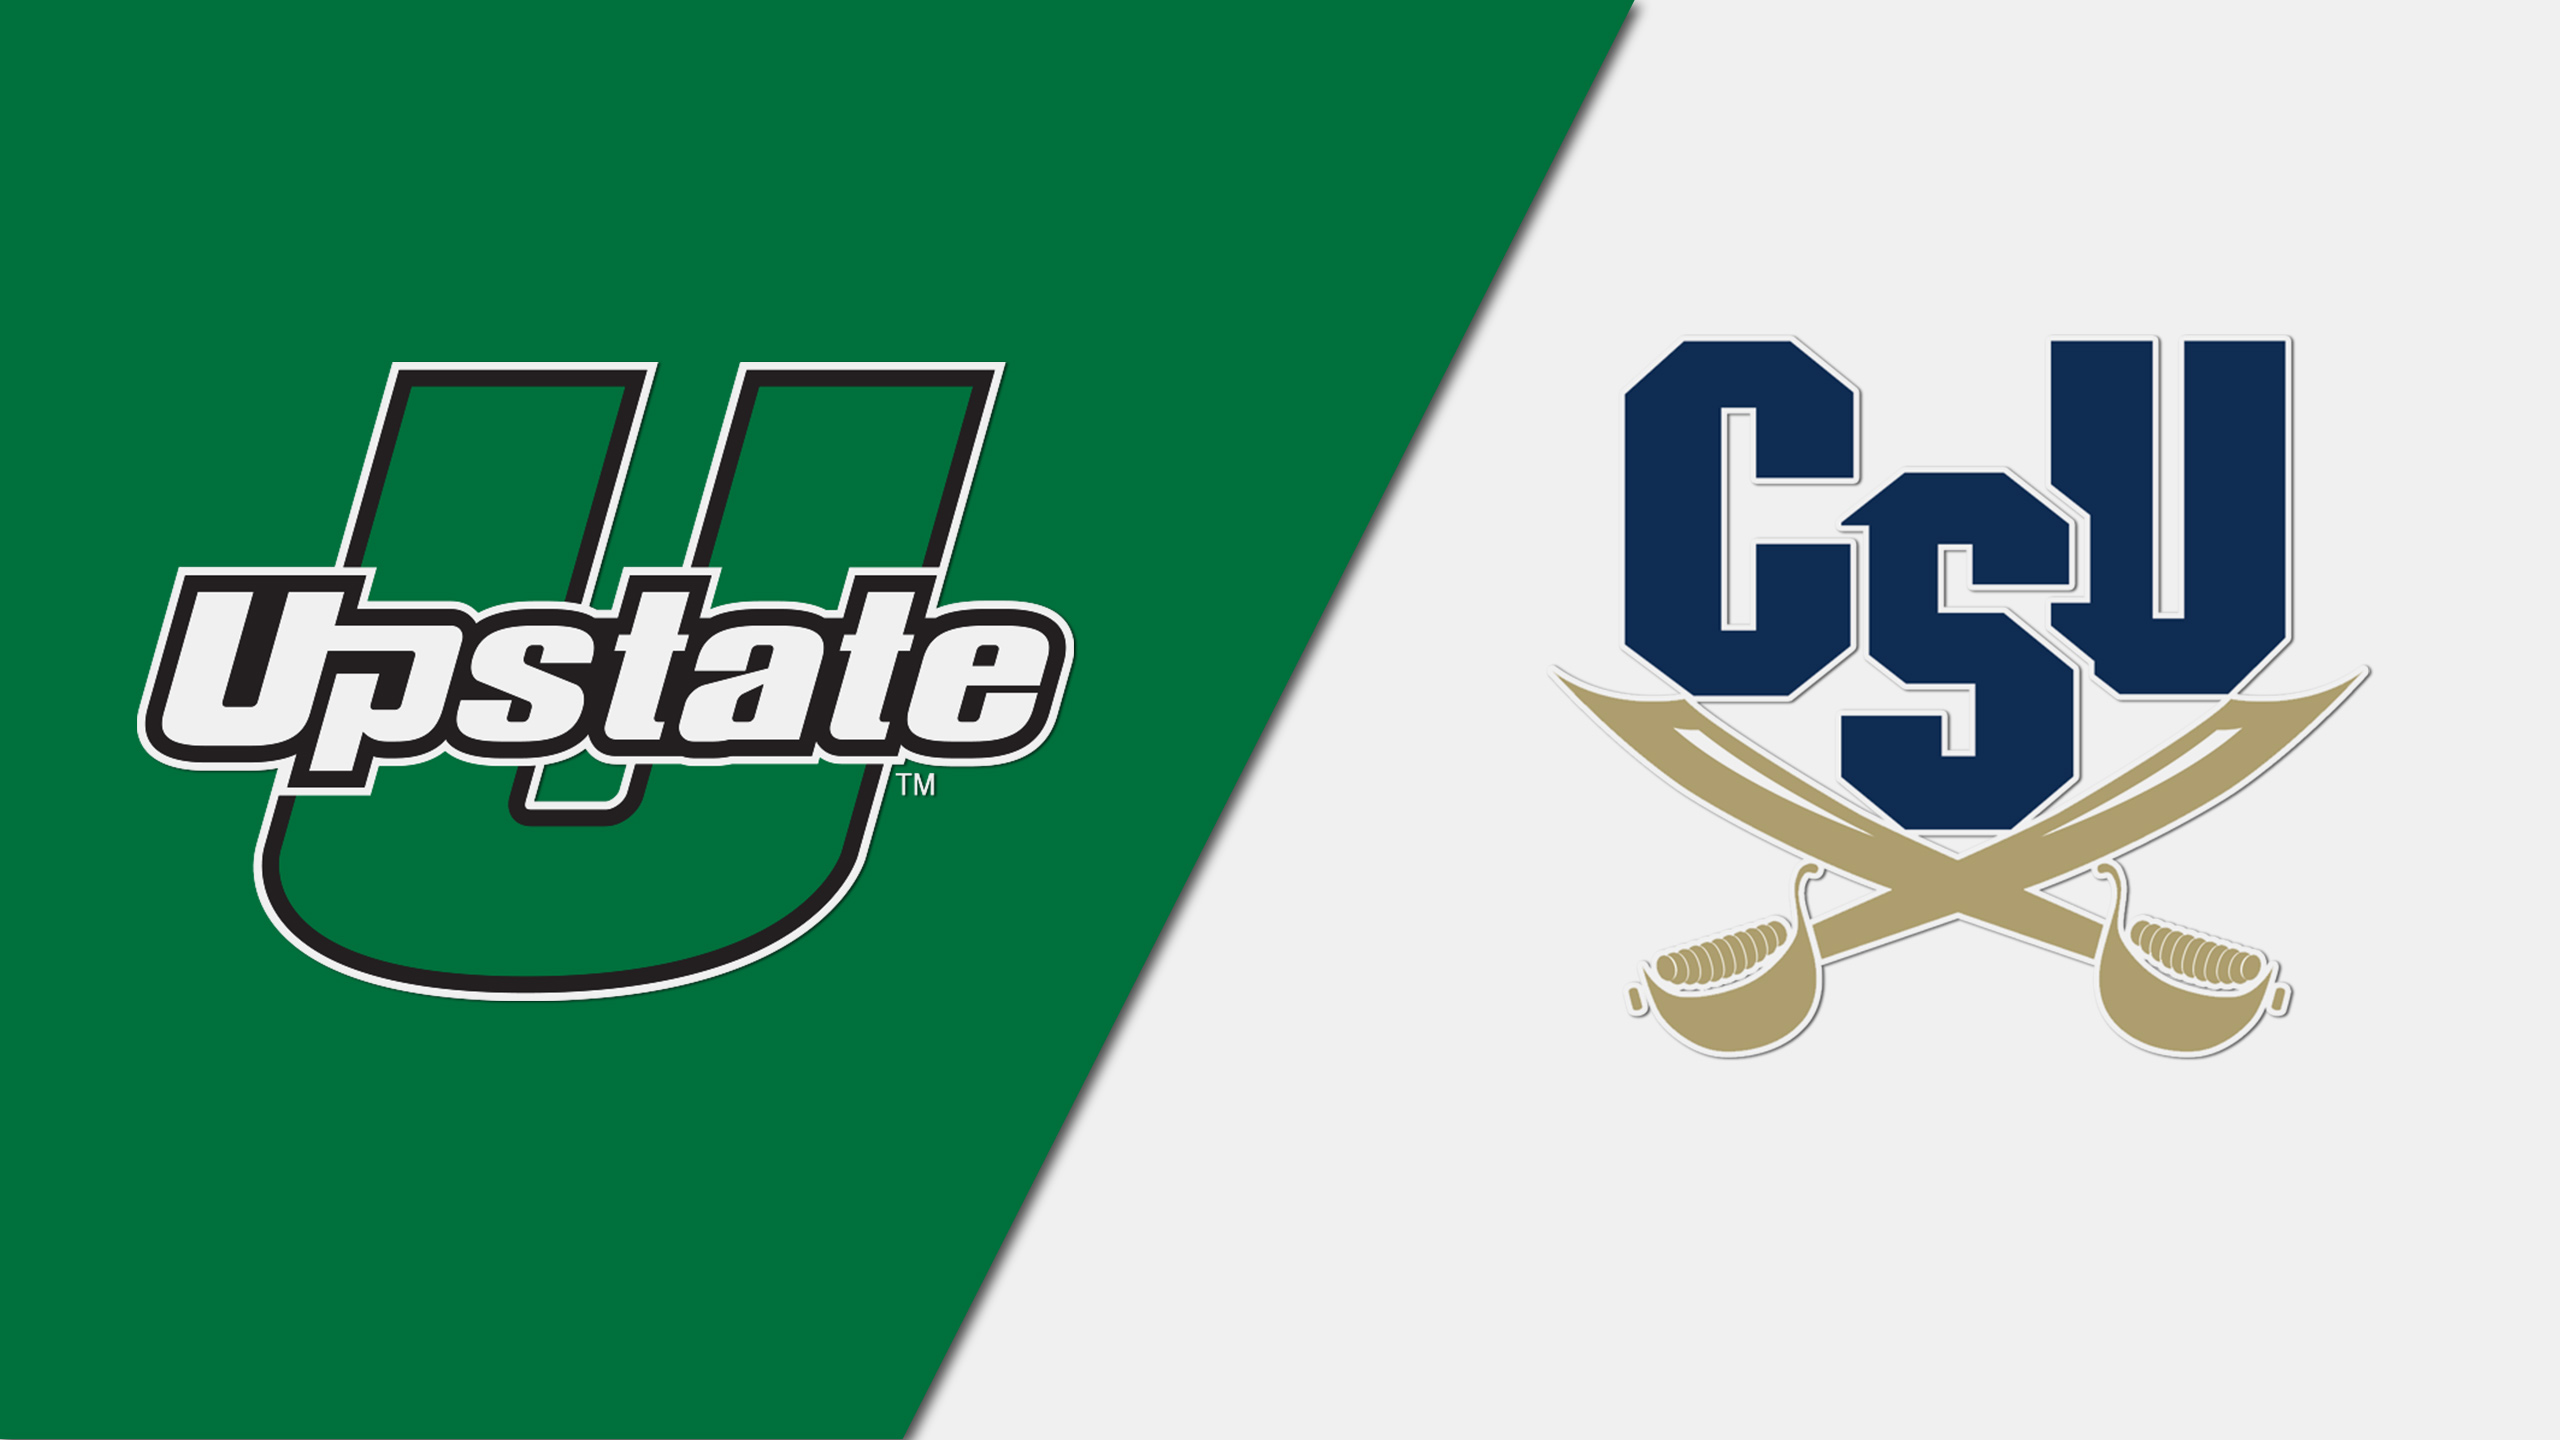 USC Upstate vs. Charleston Southern (First Round, Game 2) (Big South Men's Basketball Championship)